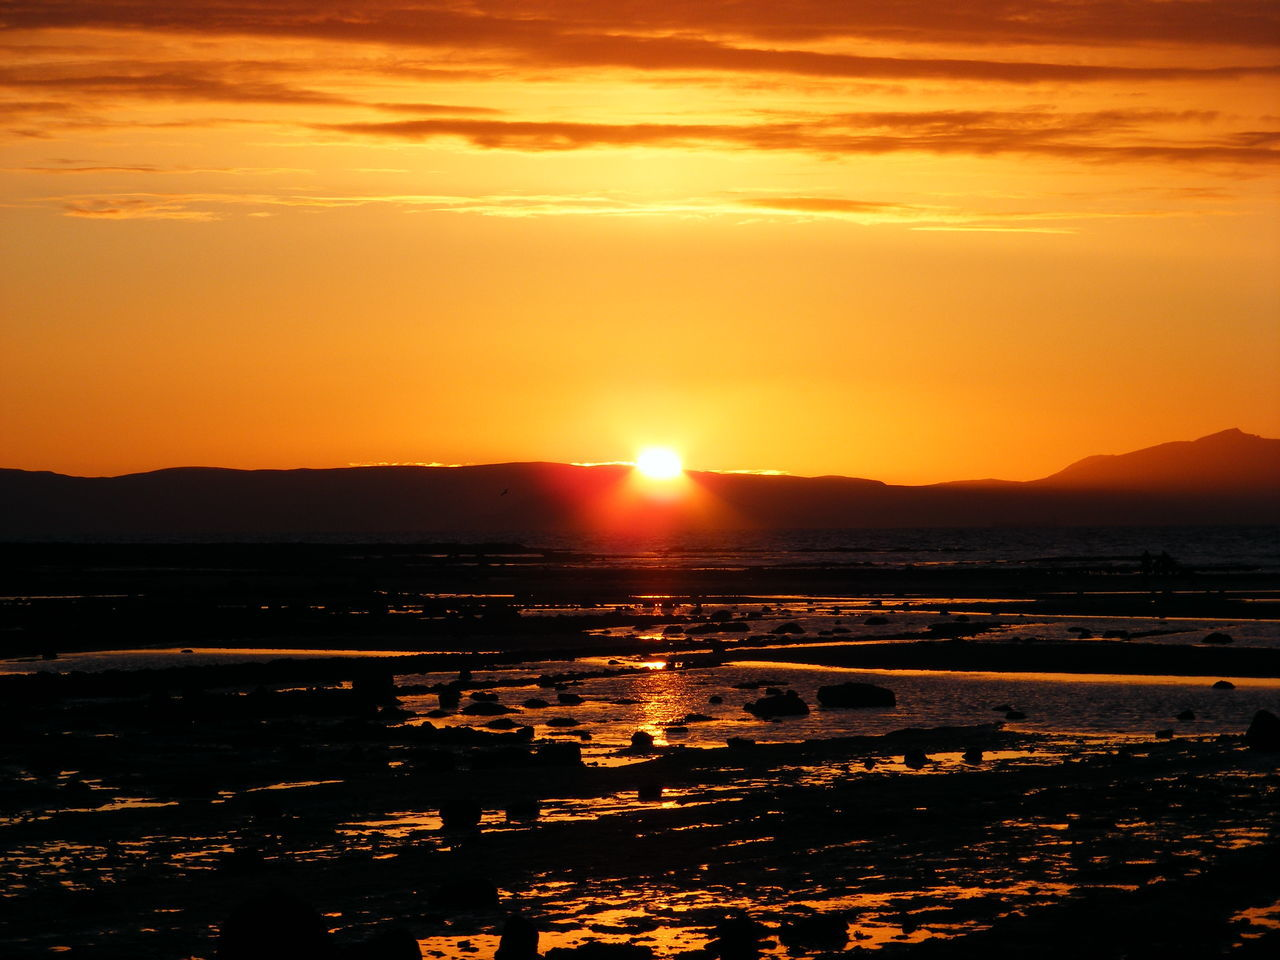 sunset, sun, orange color, beauty in nature, nature, scenics, tranquil scene, tranquility, reflection, sky, water, no people, sunlight, silhouette, outdoors, mountain, landscape, sea